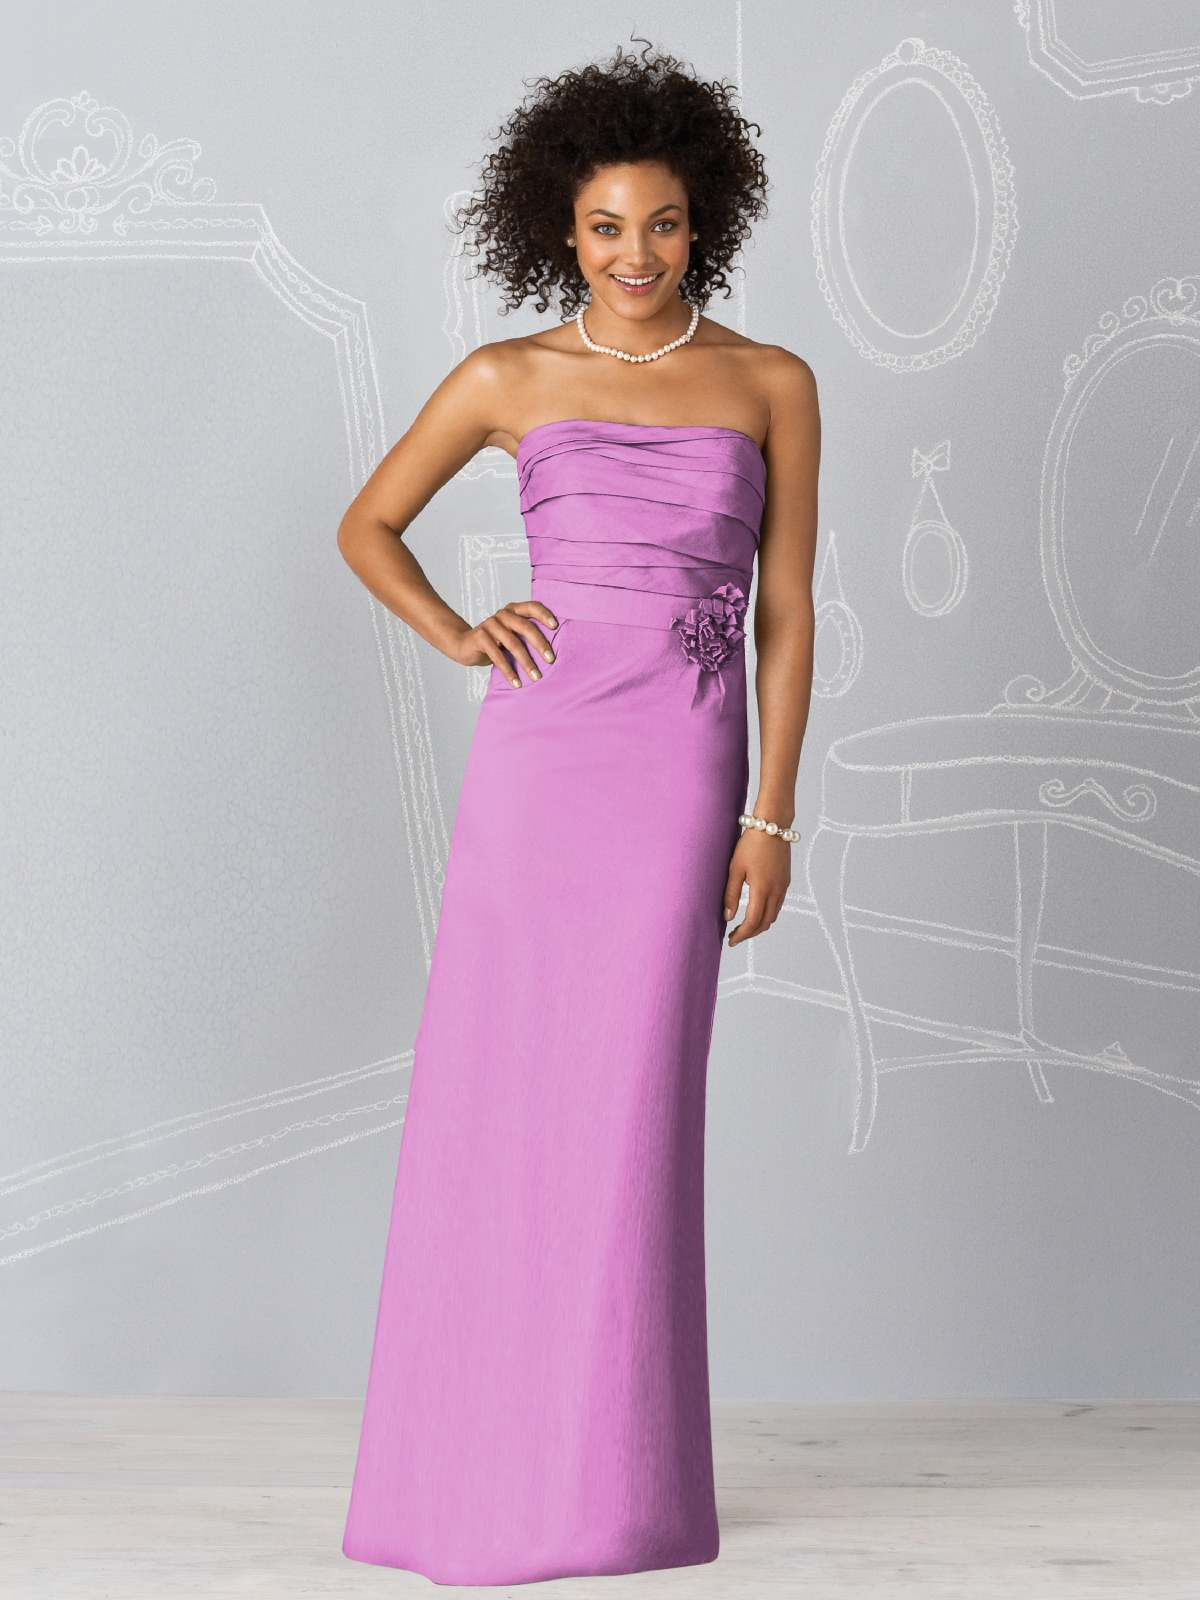 Lilac Column Strapless Zipper Floor Length Prom Dresses With Ruffles And Flowers